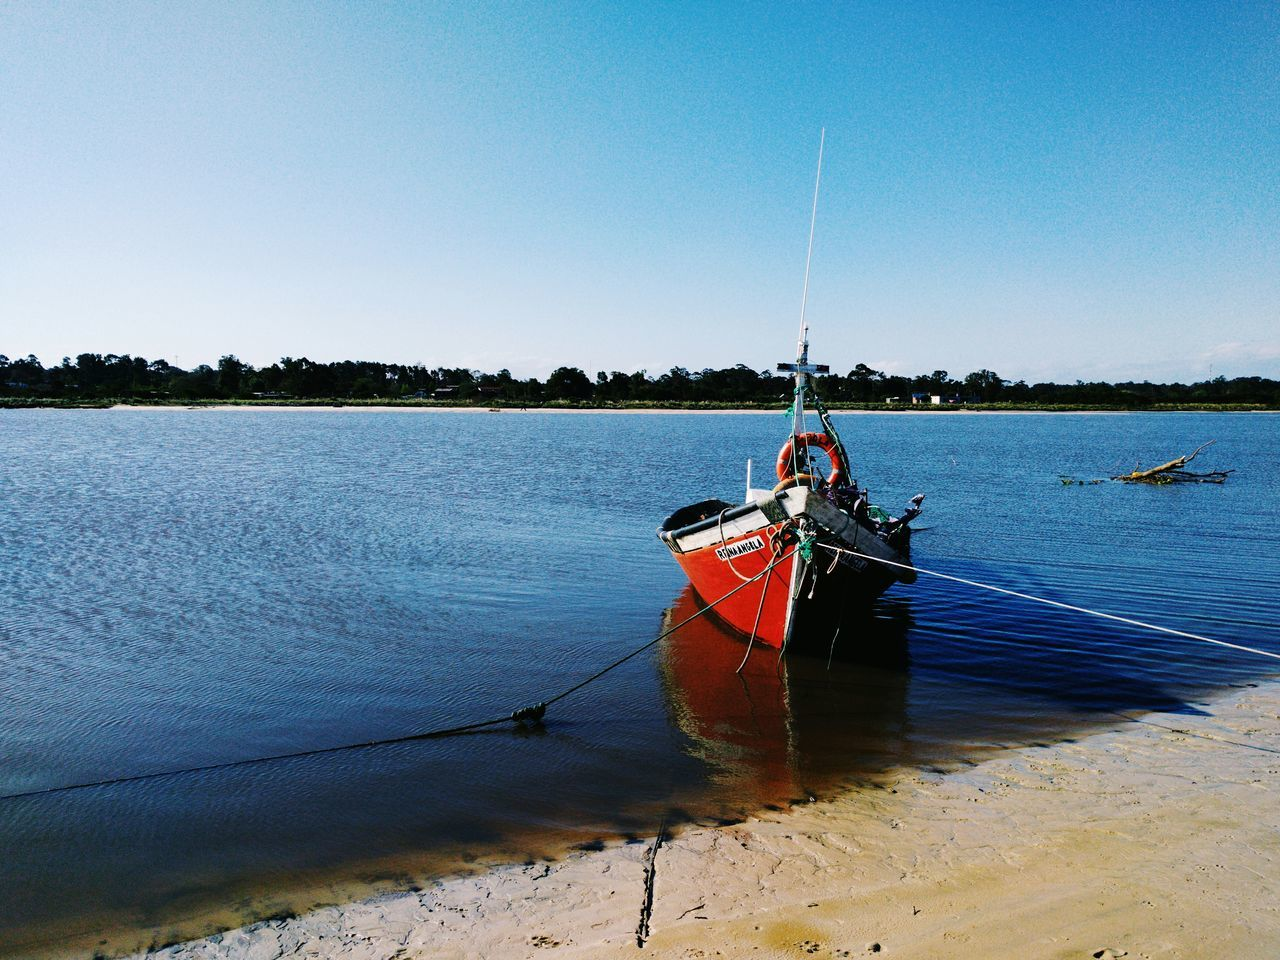 El último bote Photo Foto Tranquility Landscape Day Outdoors Nautical Vessel No People Sky Water Nature